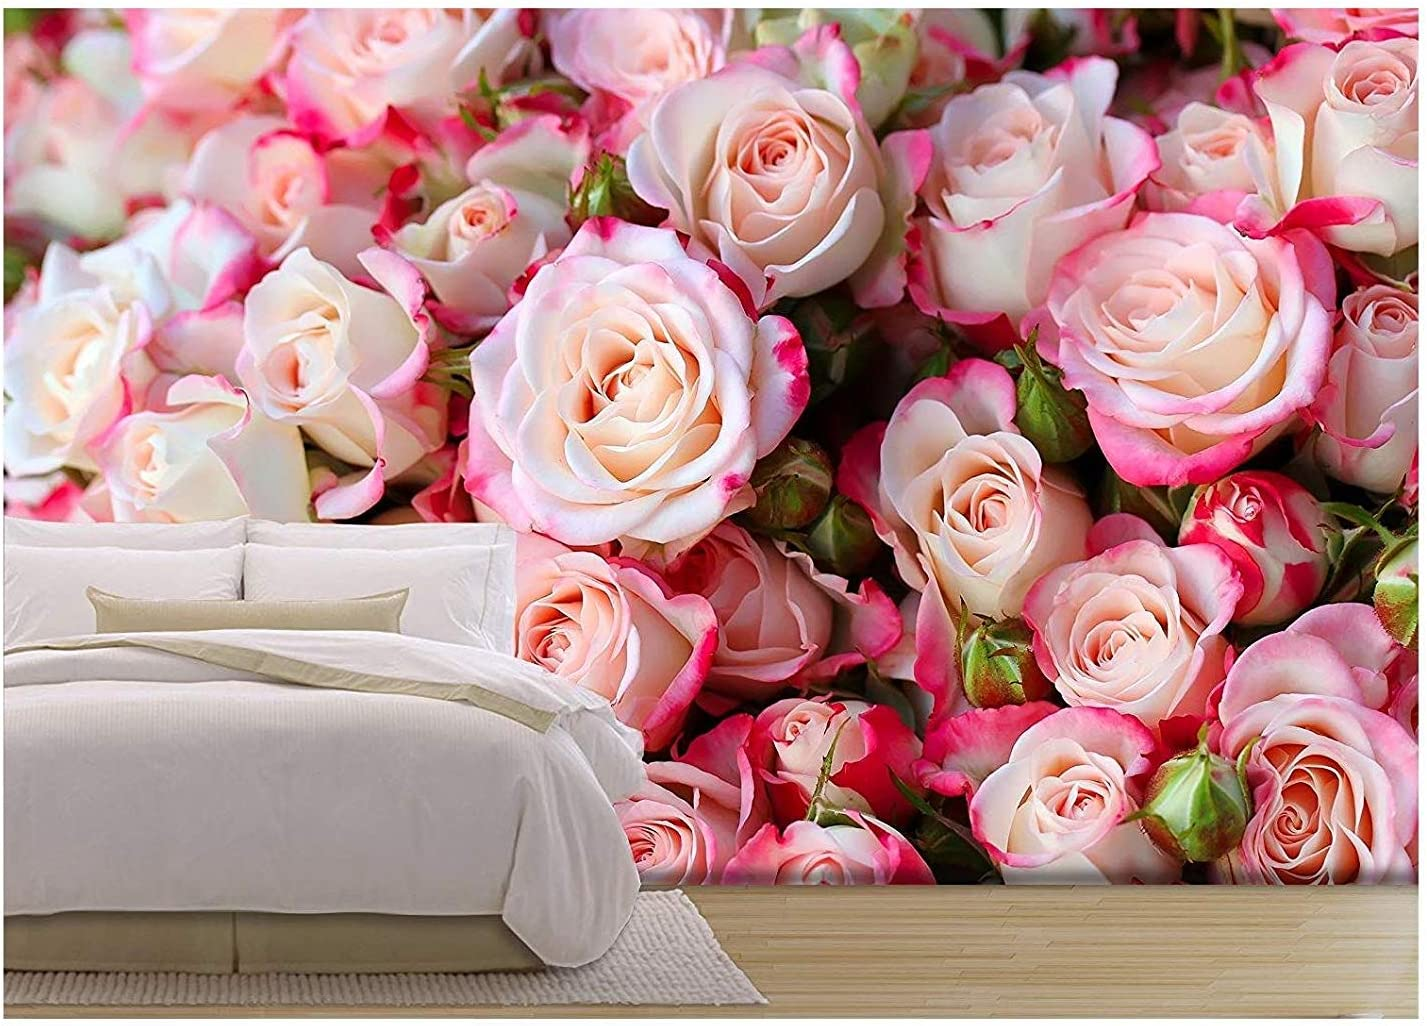 Wall26 Roses Background Removable Wall Mural Self Adhesive Large Wallpaper 100x144 Inches Home Improvement Amazon Com